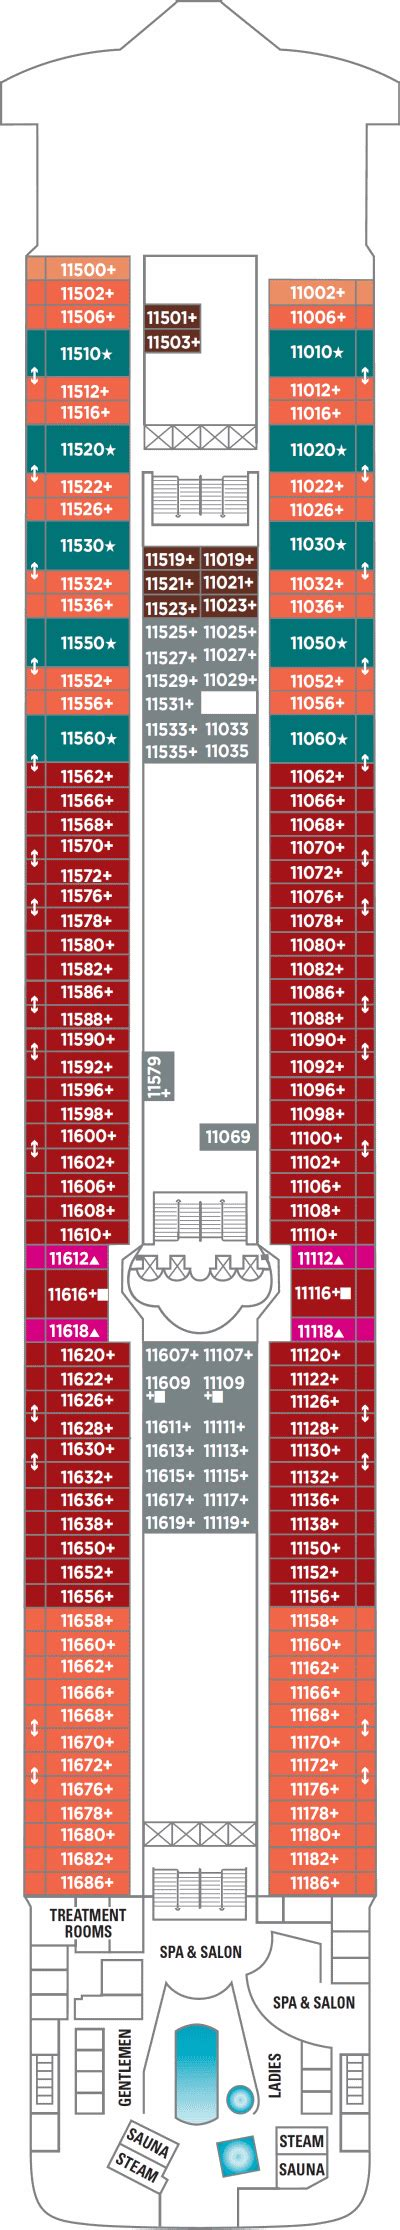 Ncl Deck Plans 11 cruises cruise cruises with